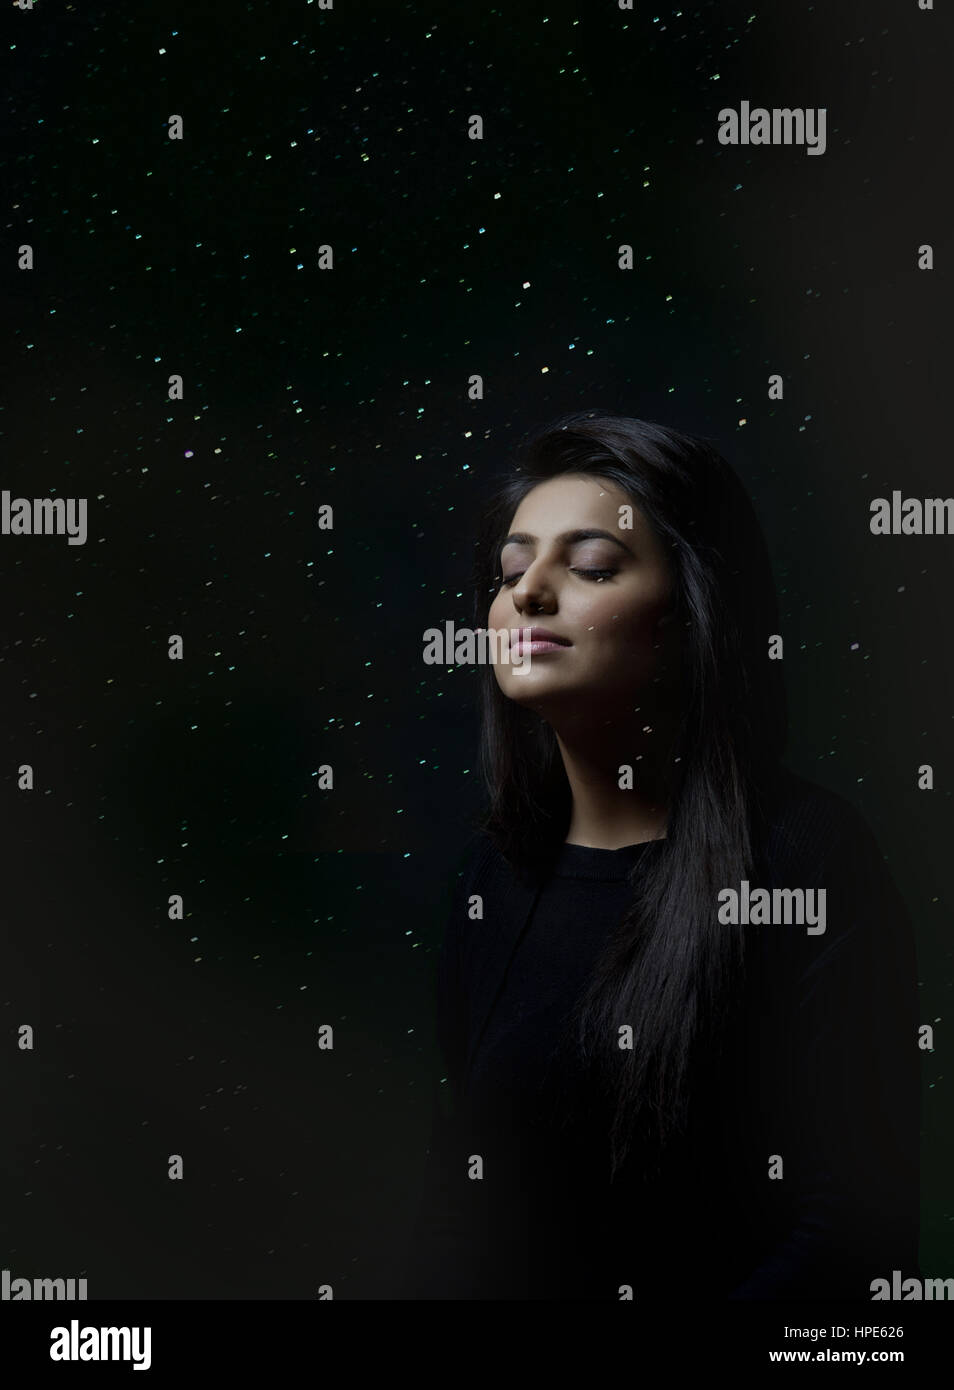 Woman thinking with closed eyes in digitally composed glowing lights or starry sky - Stock Image